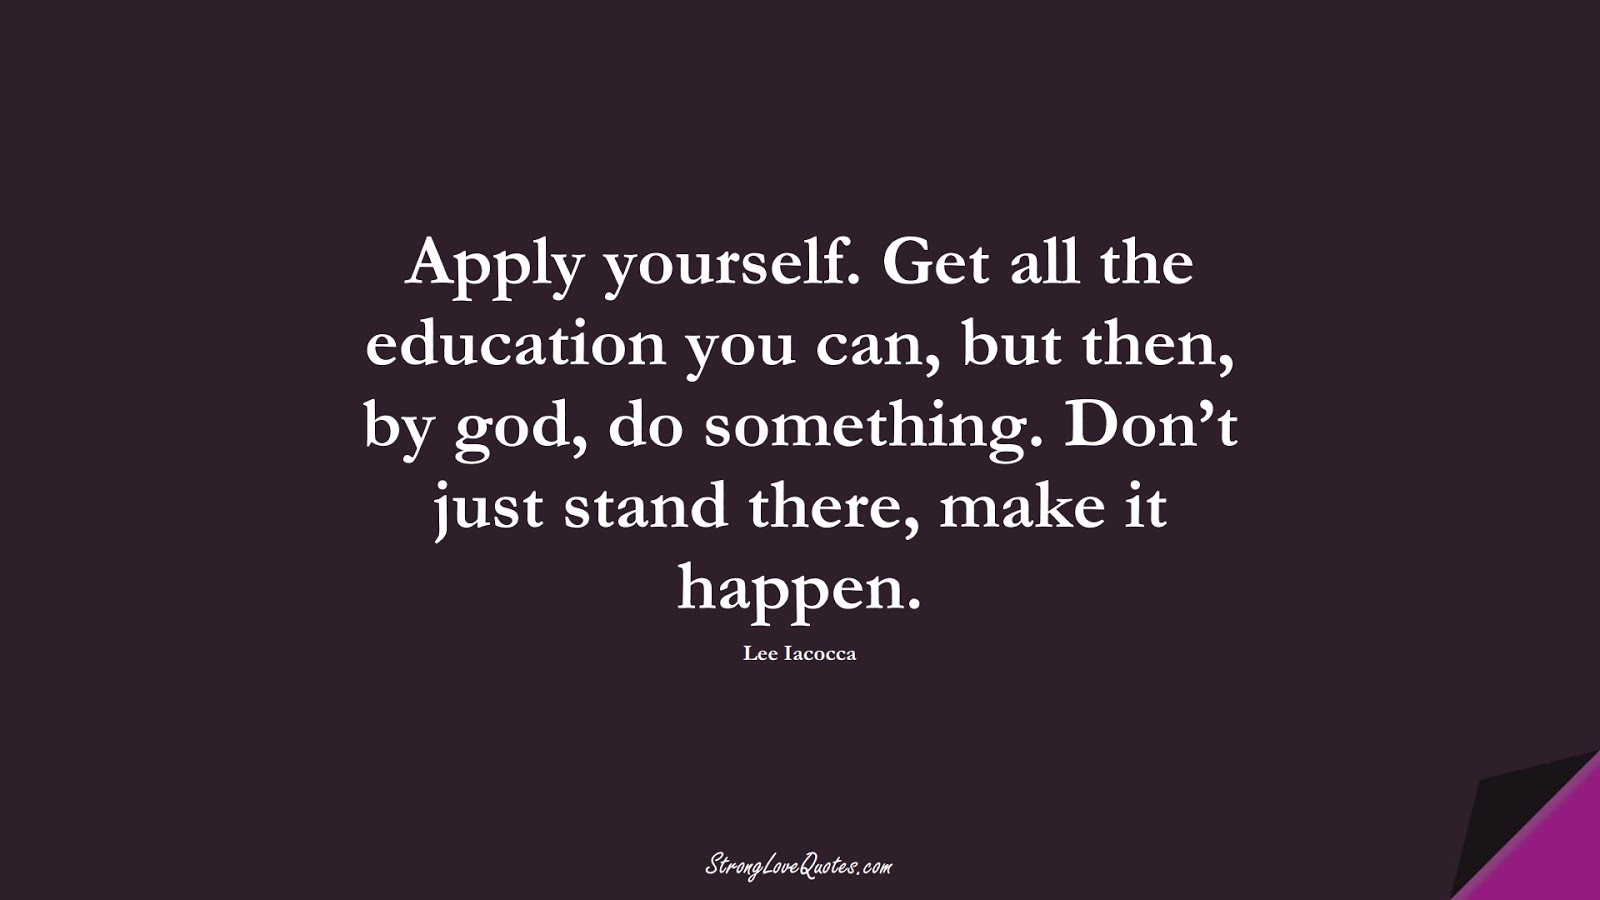 Apply yourself. Get all the education you can, but then, by god, do something. Don't just stand there, make it happen. (Lee Iacocca);  #EducationQuotes